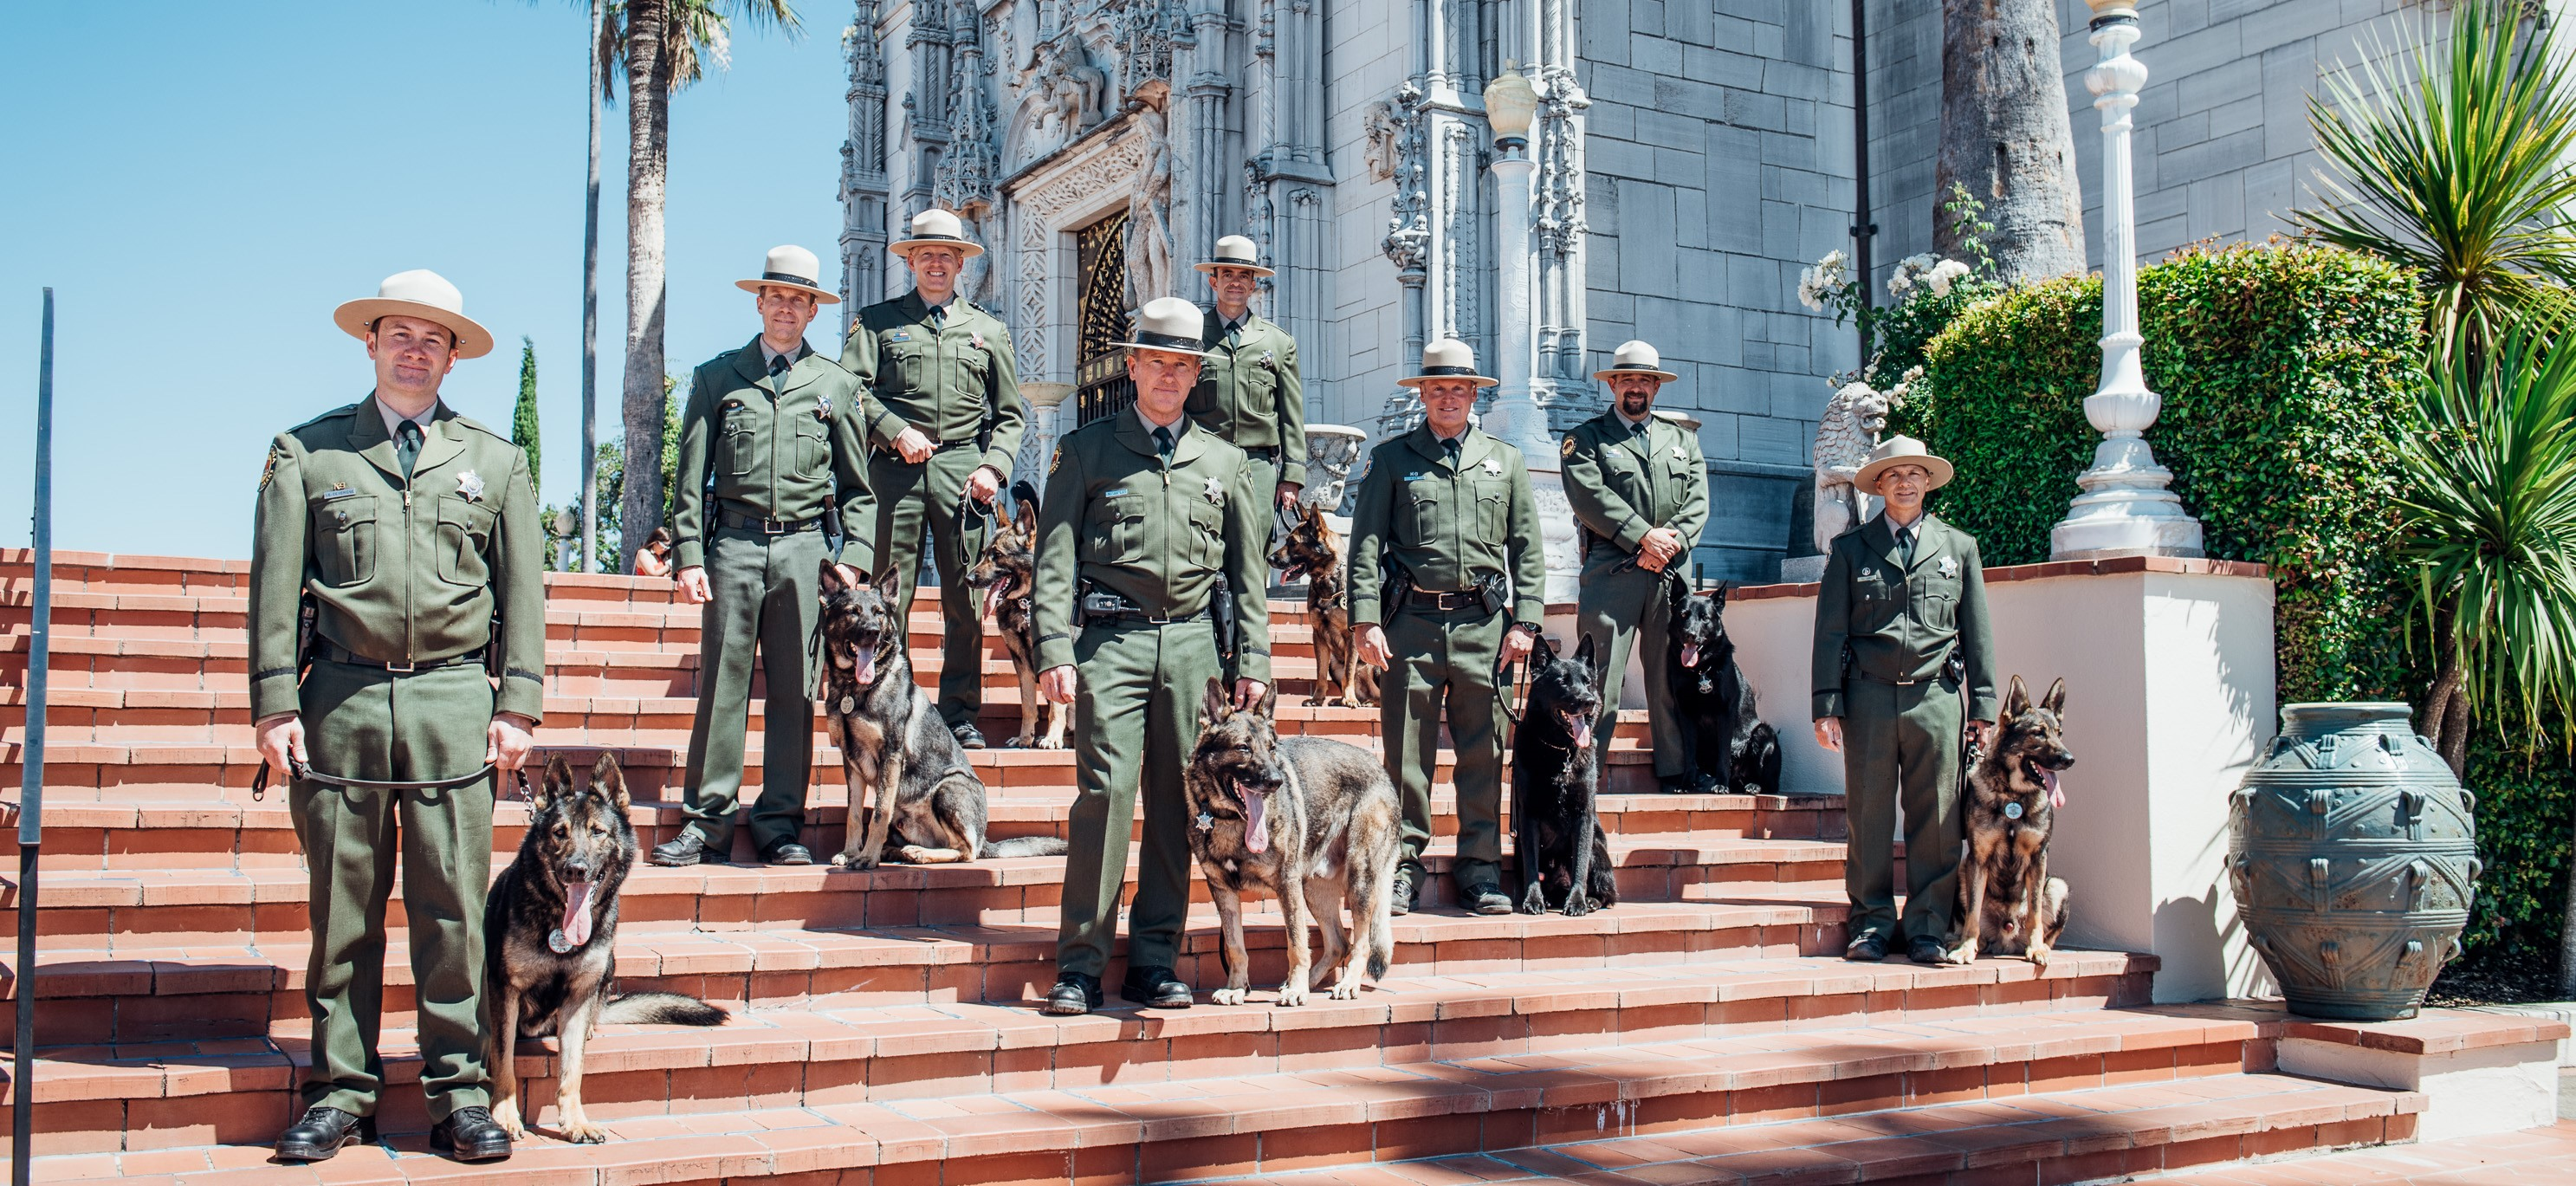 Banner for California State Parks Commemorates 50th Anniversary of K-9 Program